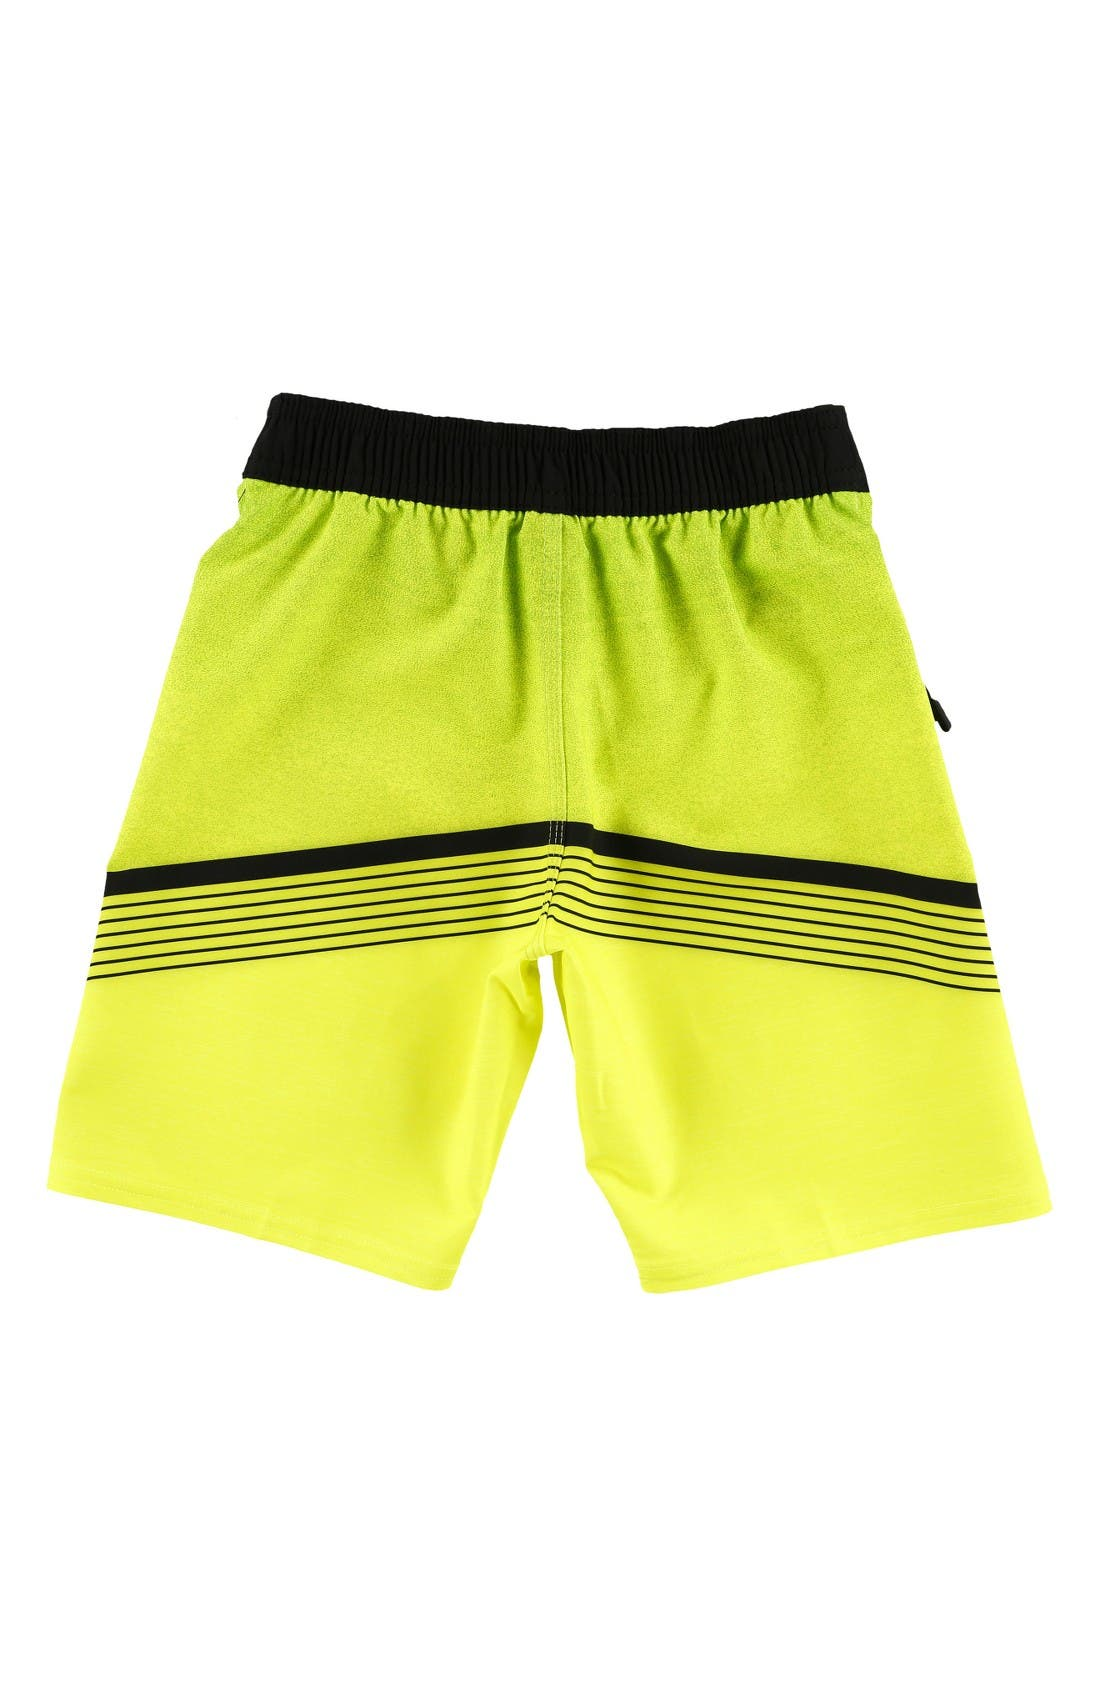 Hyperfreak Stretch Board Shorts,                             Alternate thumbnail 2, color,                             Neon Green